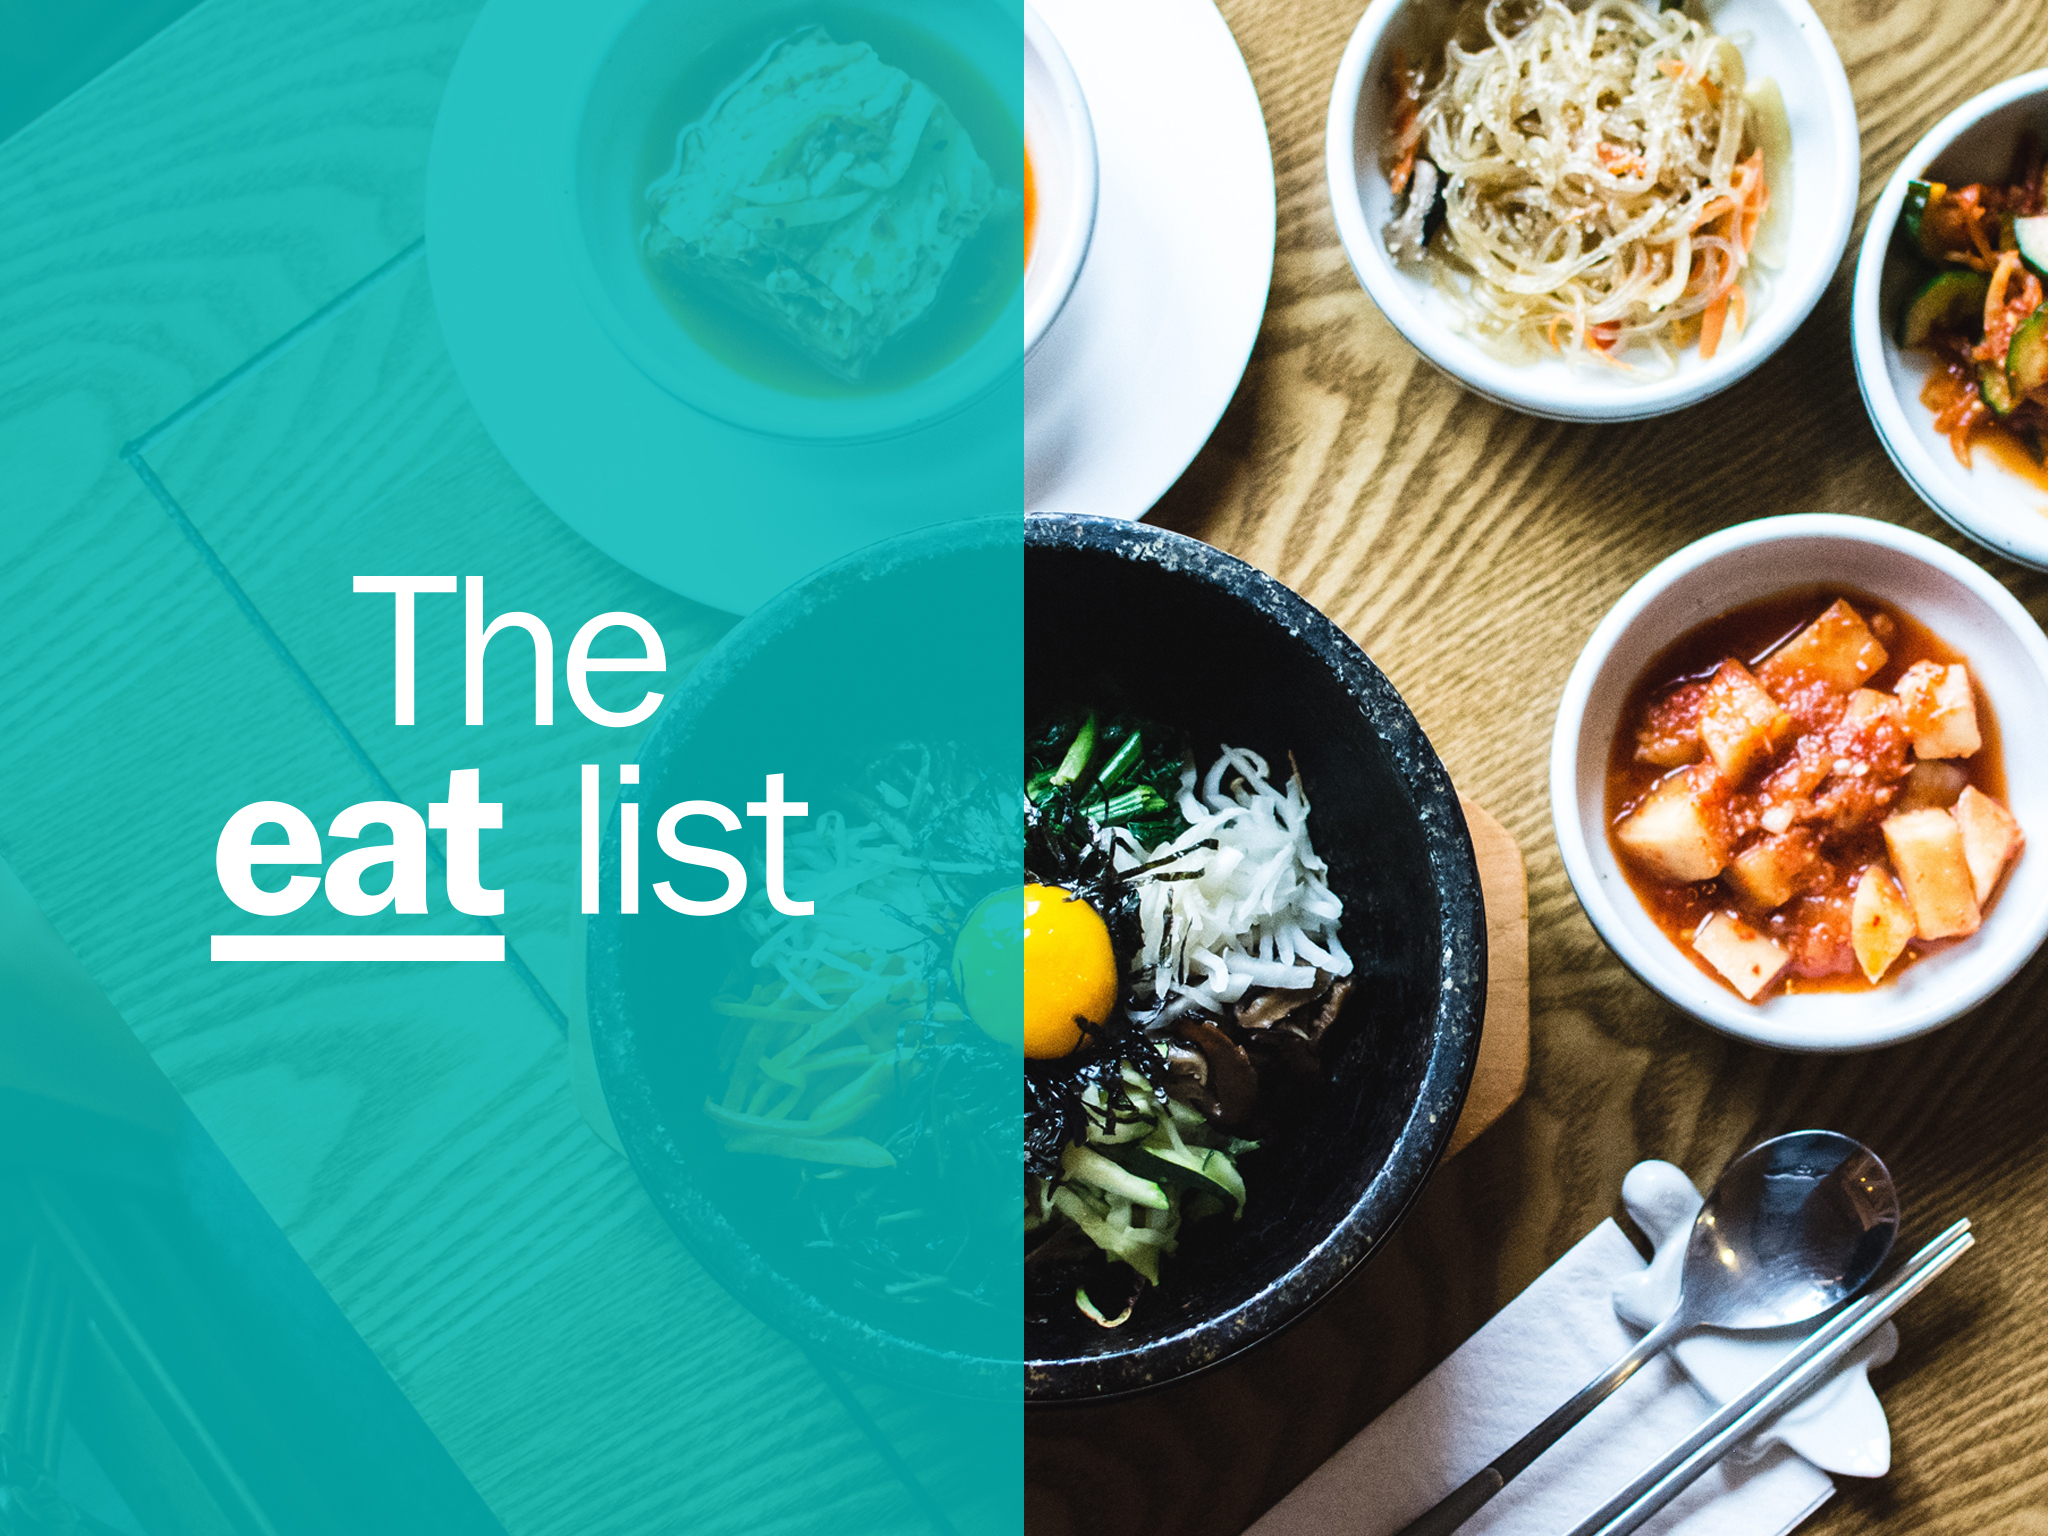 The 14 best restaurants in Salt Lake City